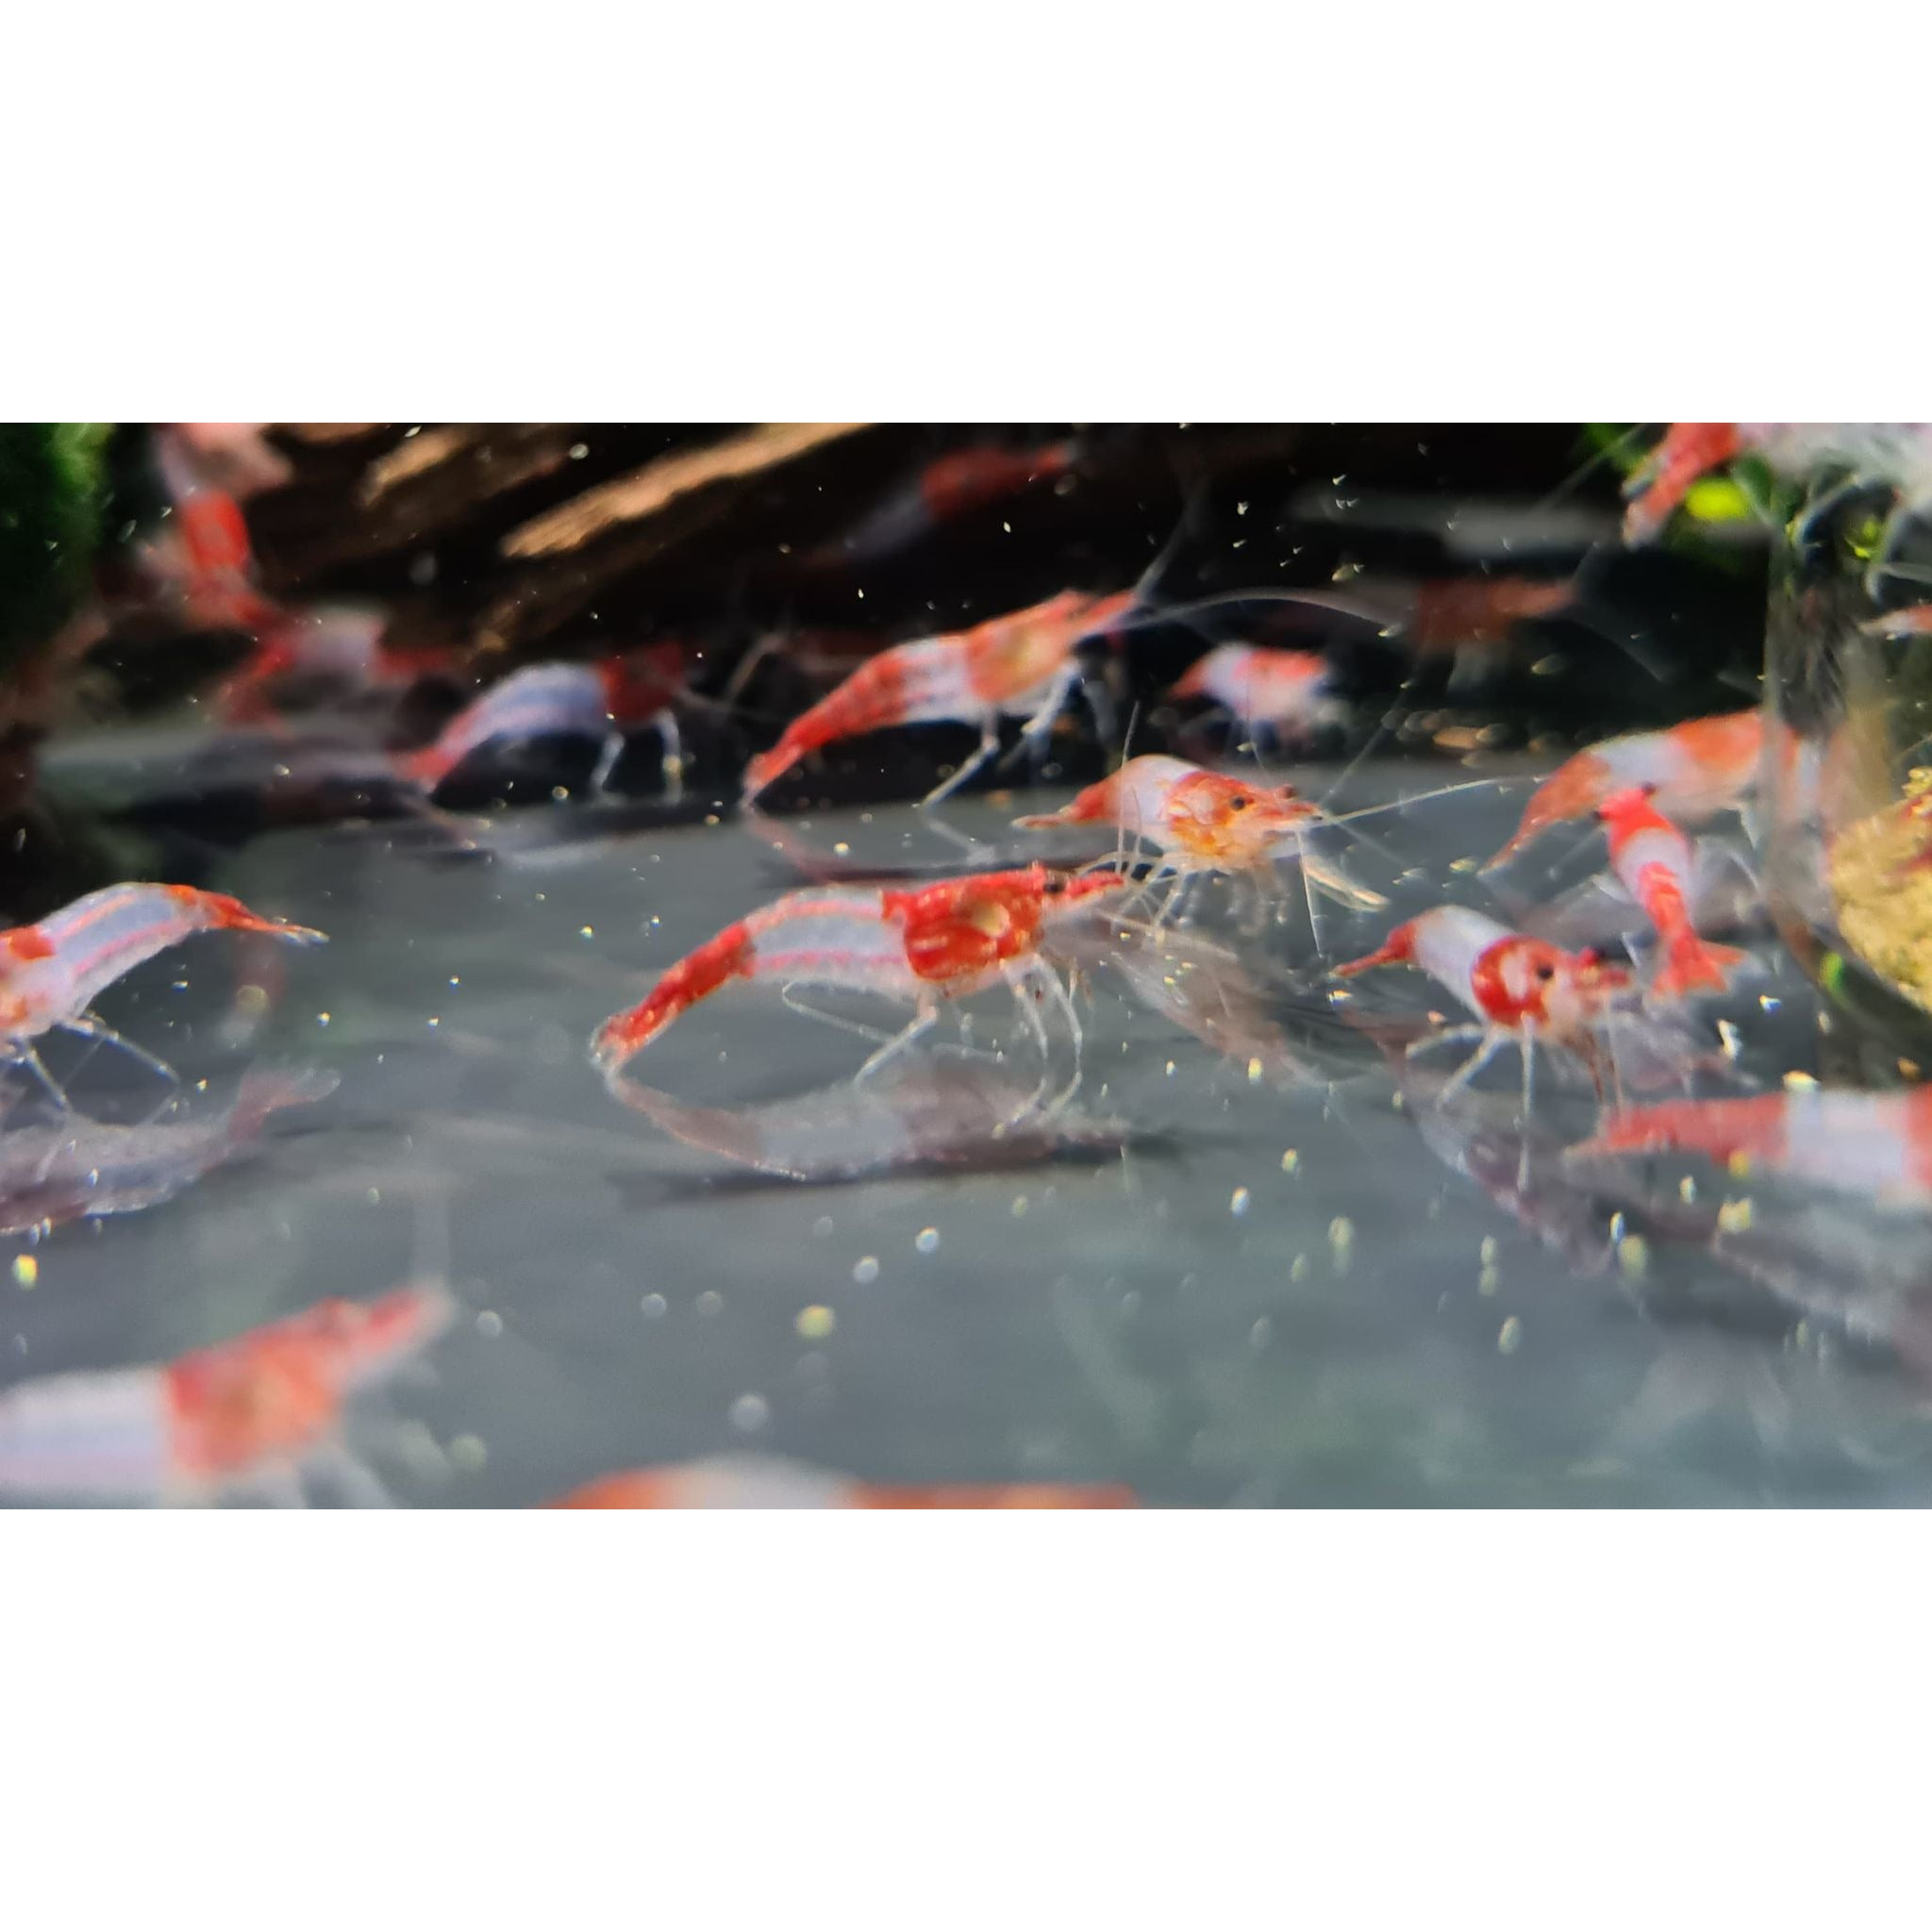 Red Rilli shrimp